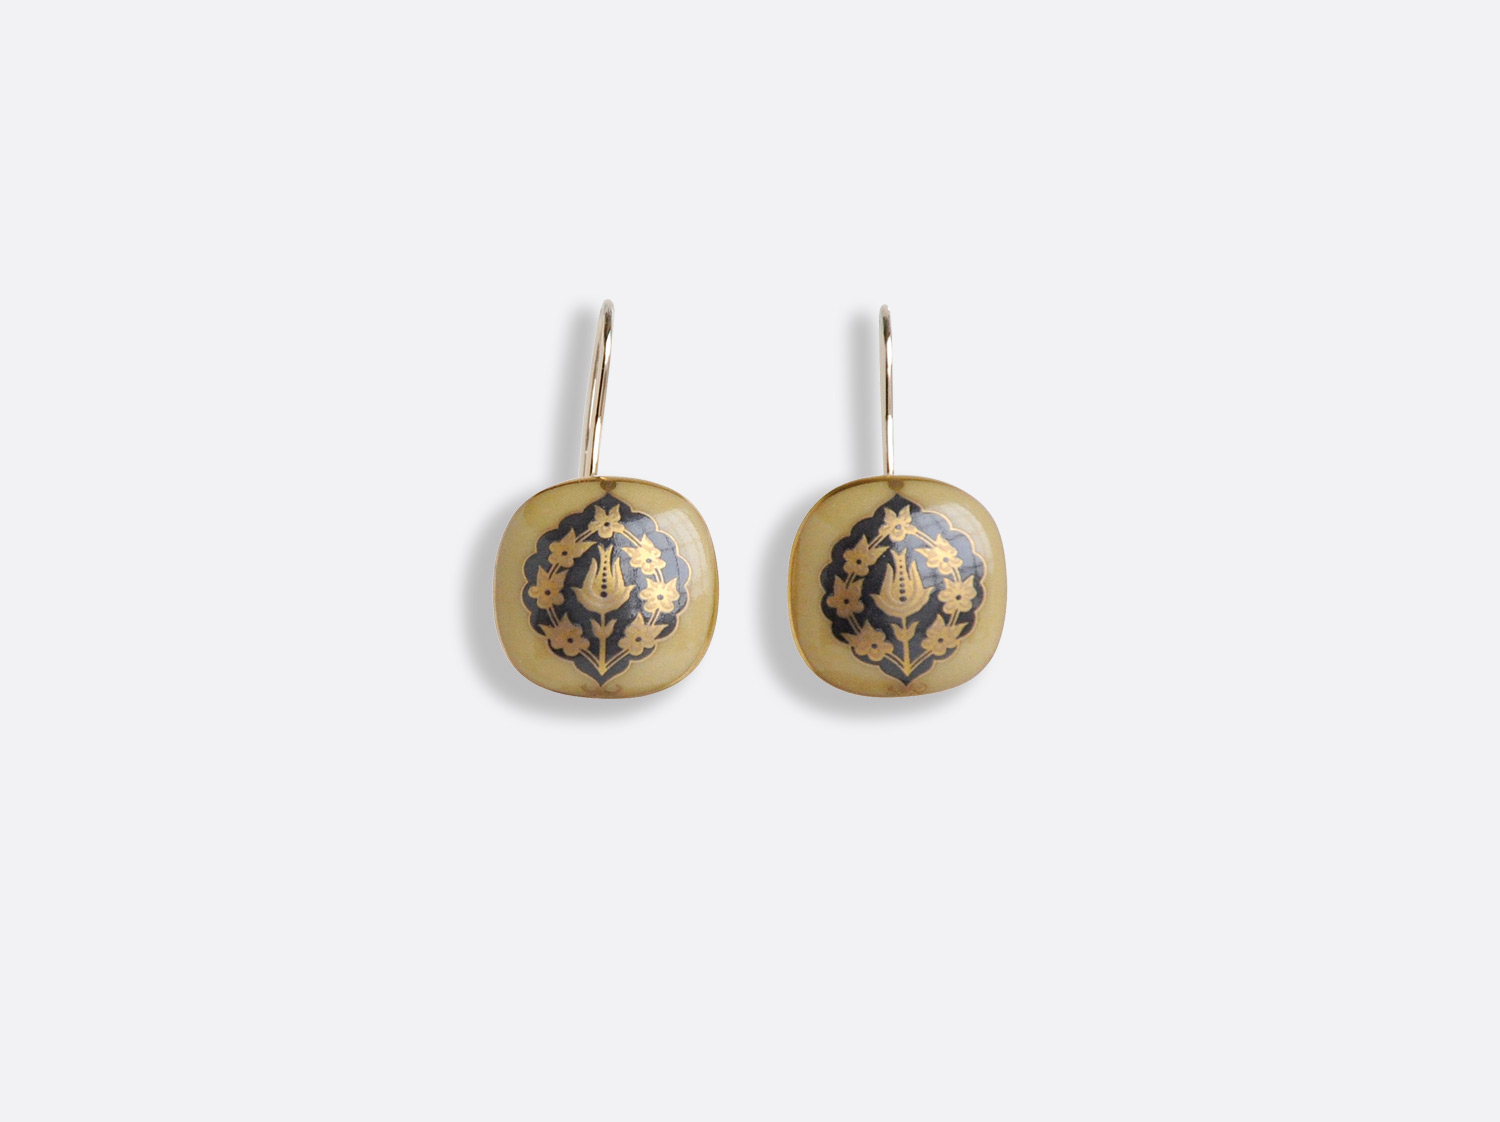 Boucles d'oreilles en porcelaine de la collection Sultane Ocre Bernardaud